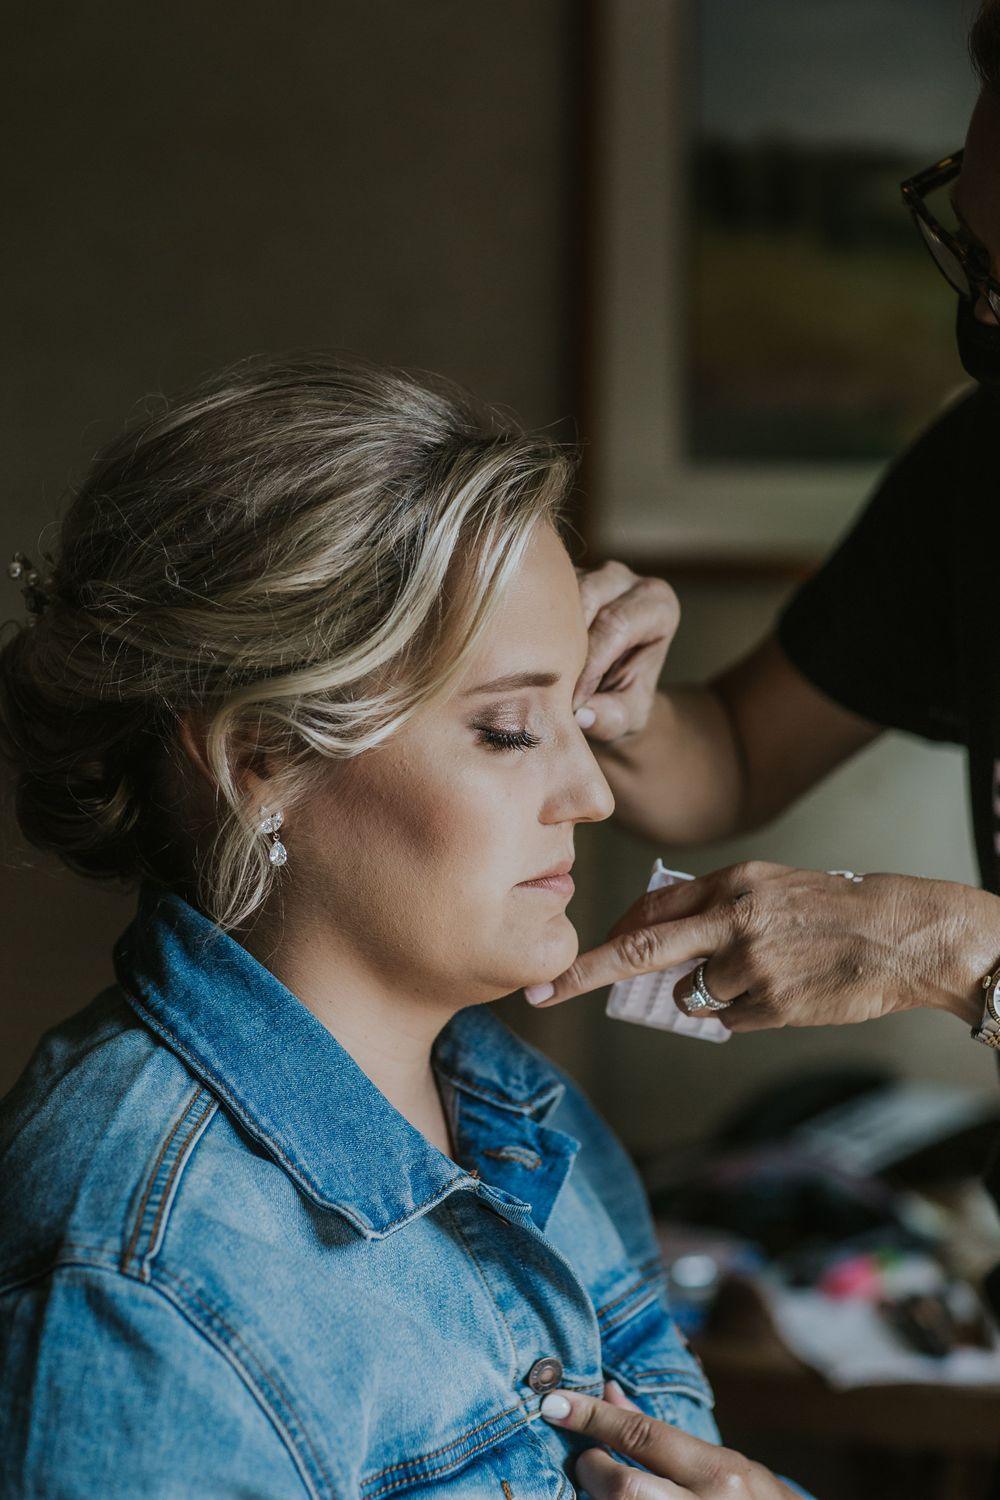 rebecca skidgel photography st helena napa valley wedding photography covid19 brides getting ready hair and makeup